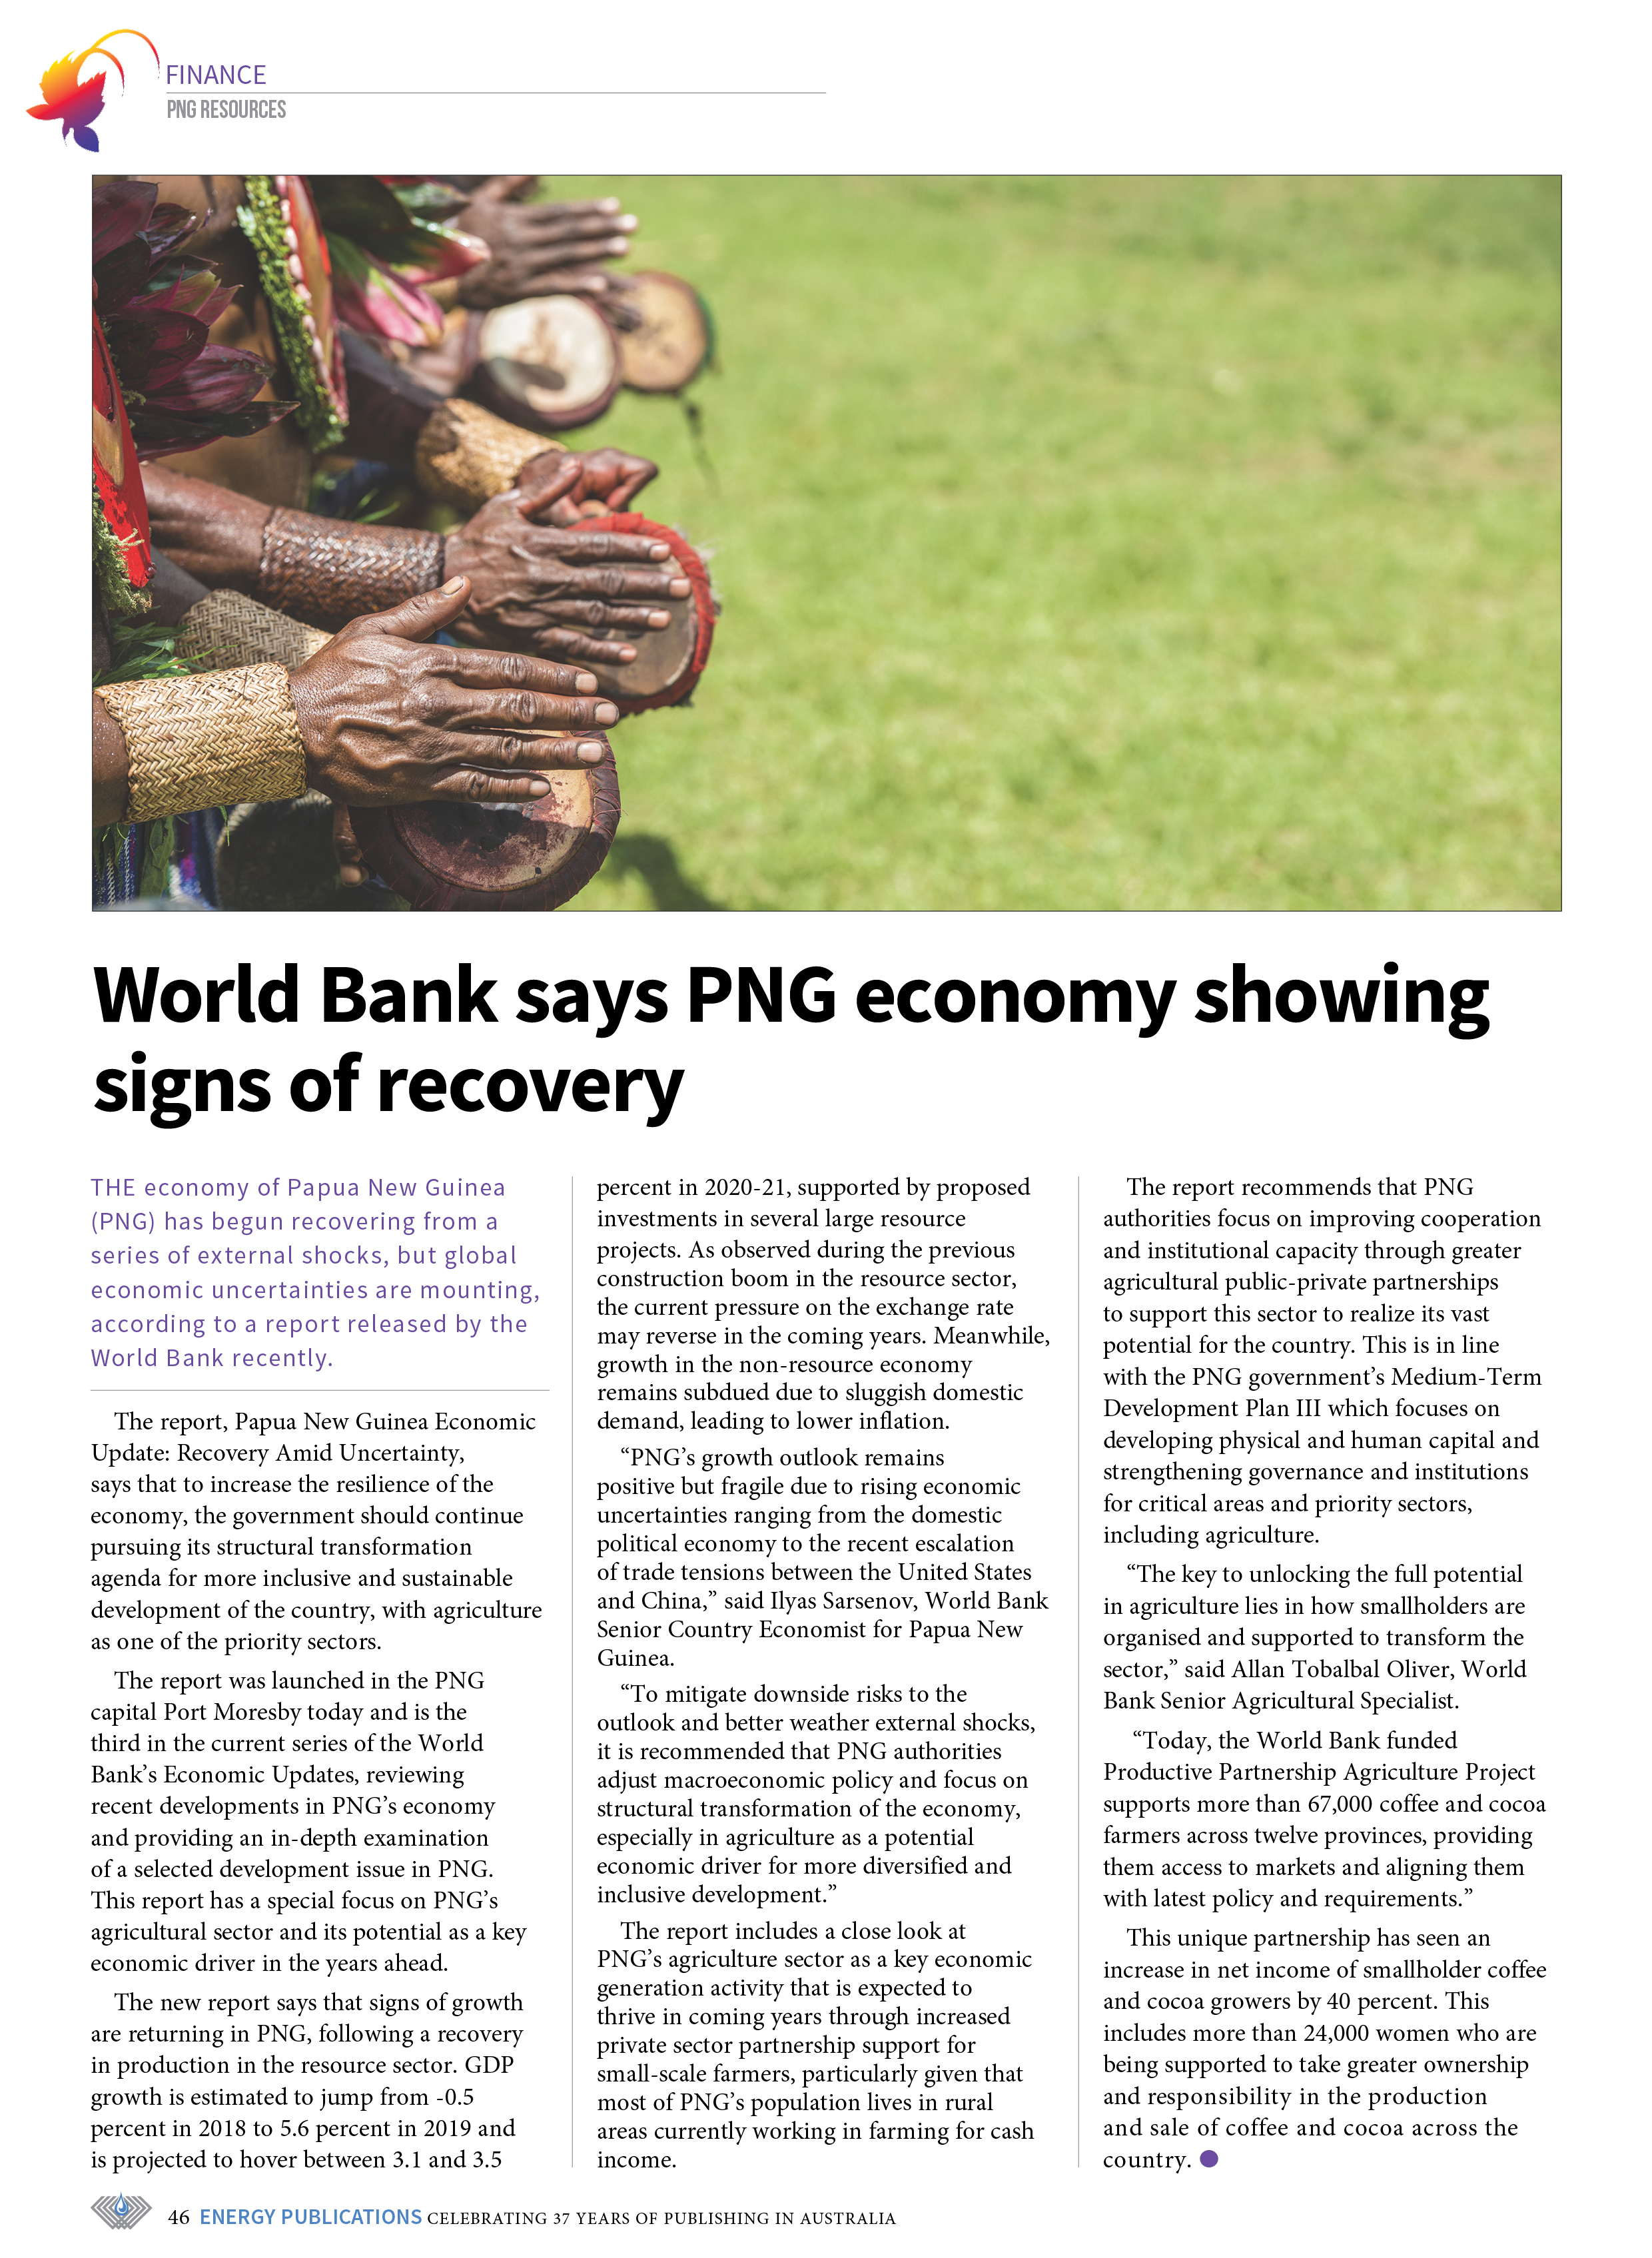 PNG Resources Q3 2019 – 48